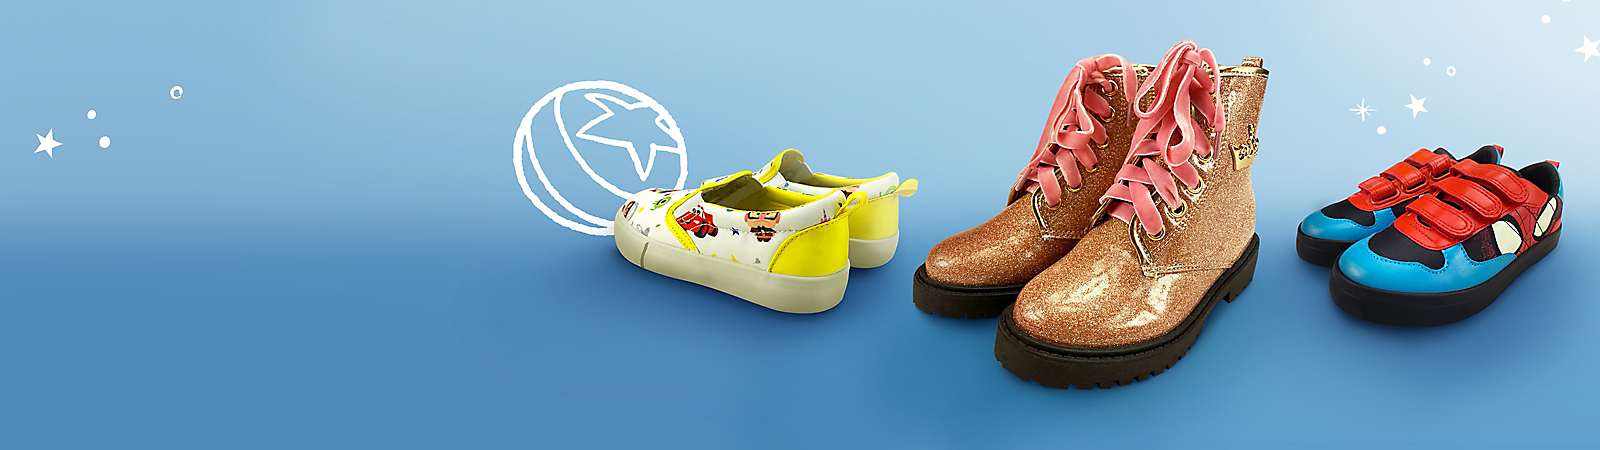 Kids' Shoes Step right up to character-fun styles for kids.